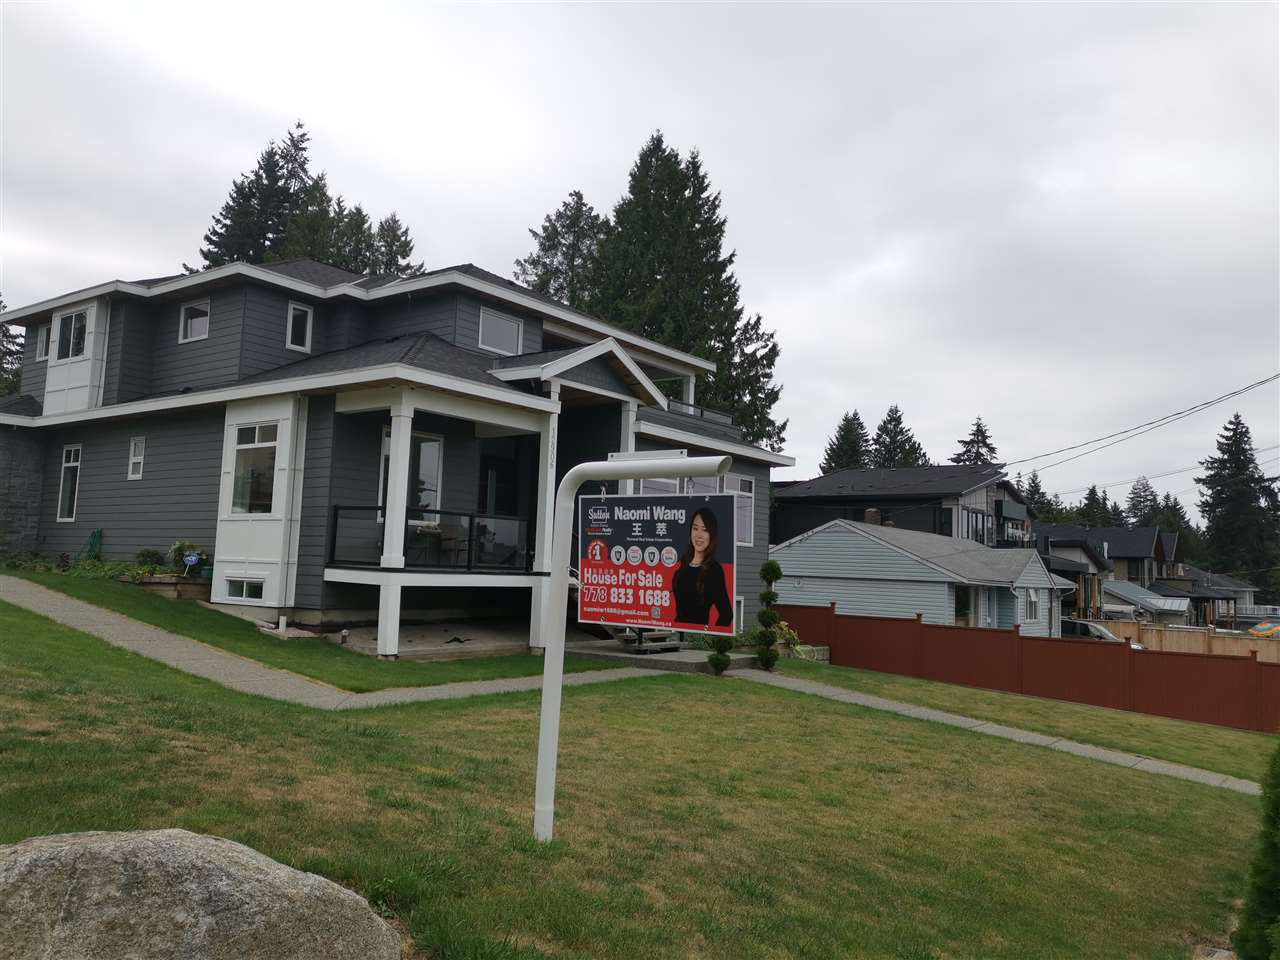 Main Photo: 12906 108 Avenue in Surrey: Whalley House for sale (North Surrey)  : MLS®# R2494545